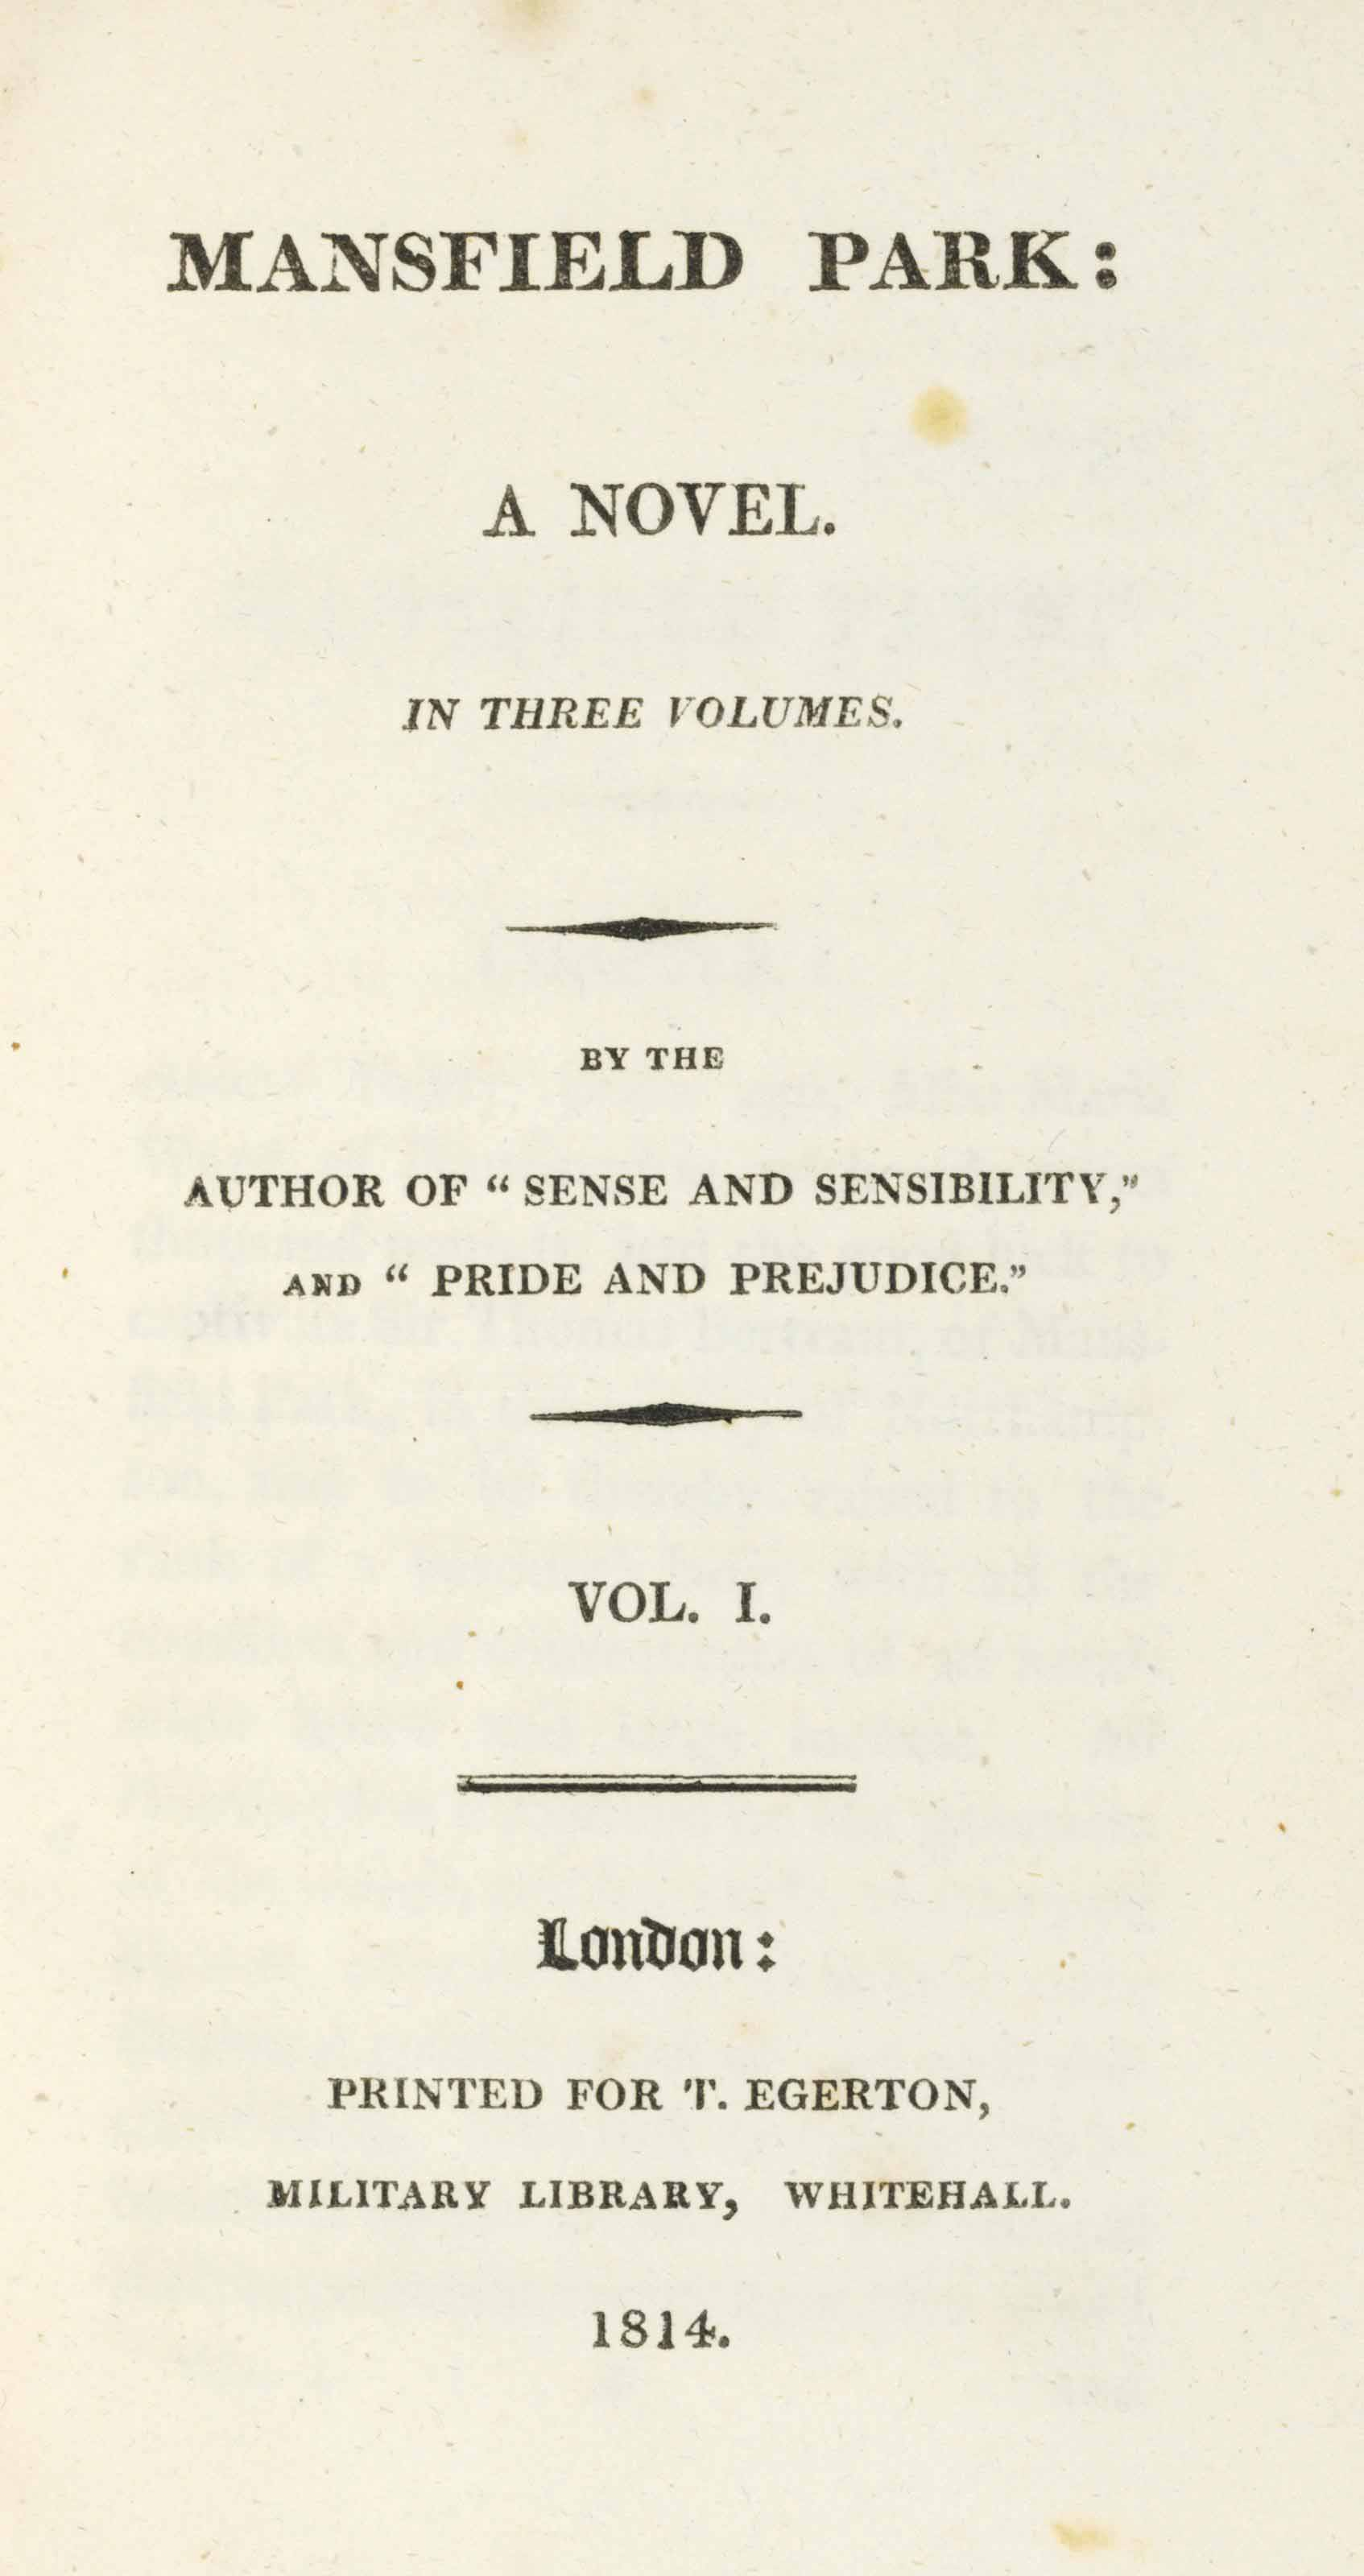 """[AUSTEN, Jane]. Mansfield Park: A Novel... By the Author of """"Sense and Sensibility,"""" and """"Pride and Prejudice."""" London: T. Egerton, 1814."""